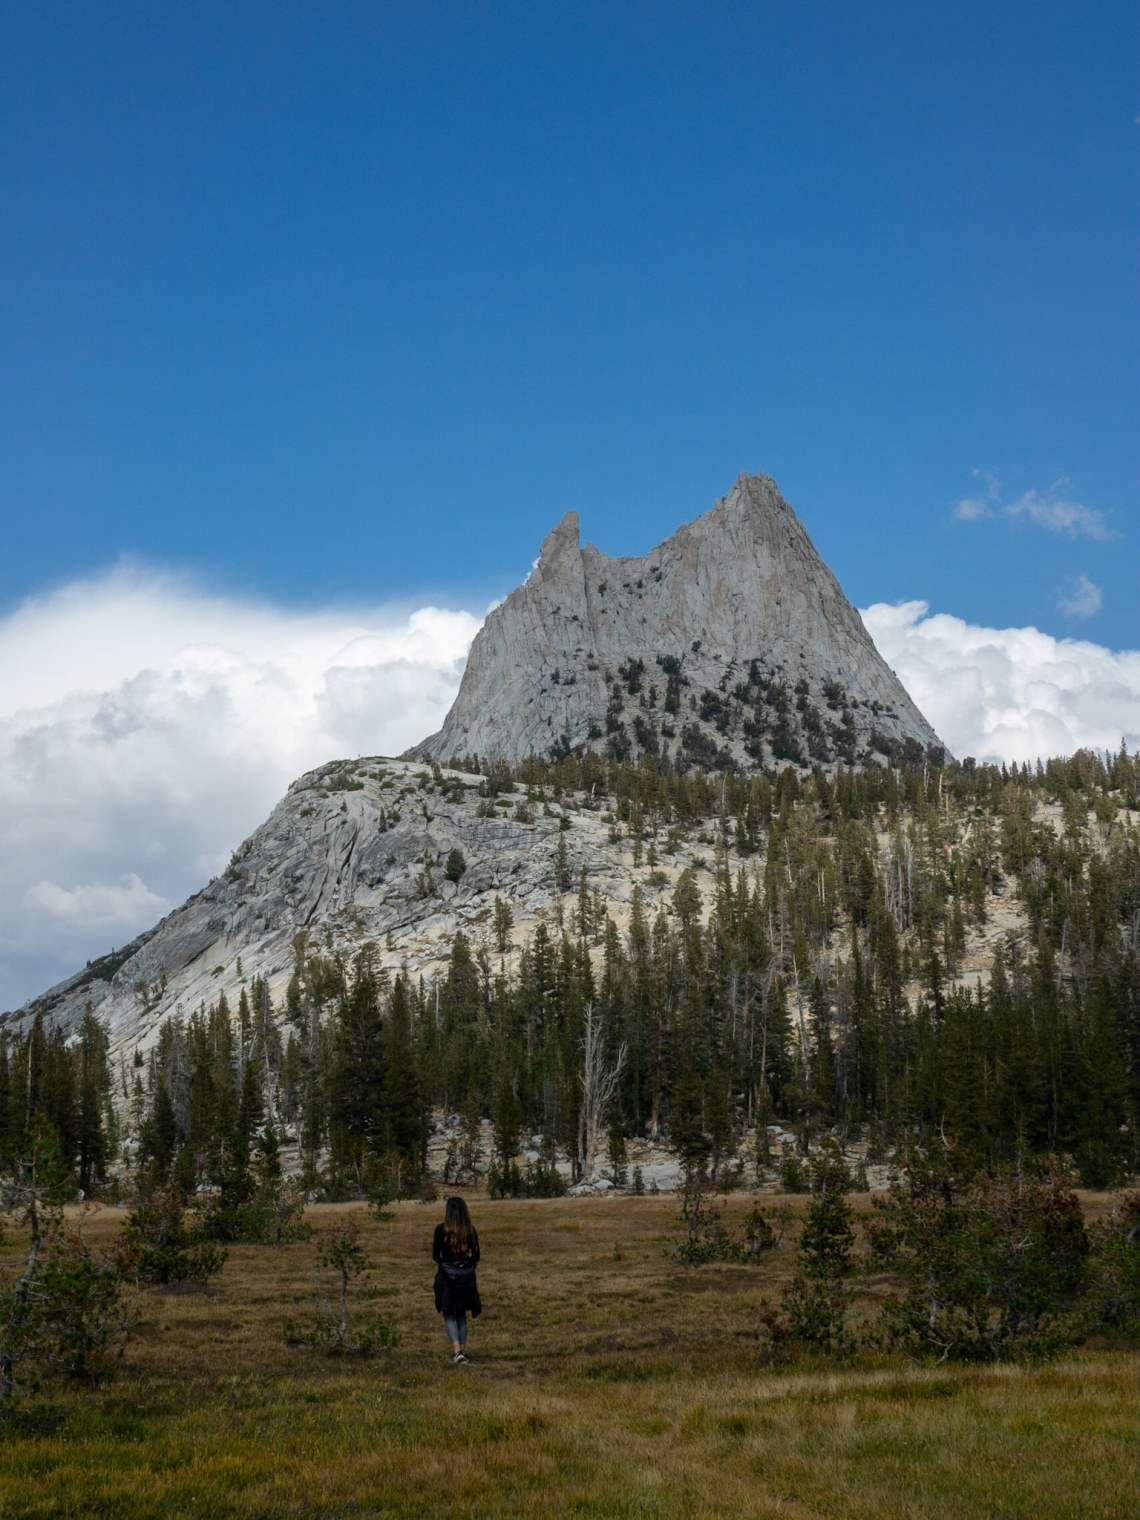 The Best Adventure Travel Compact camera - Sony RX10 III - Cathedral peak